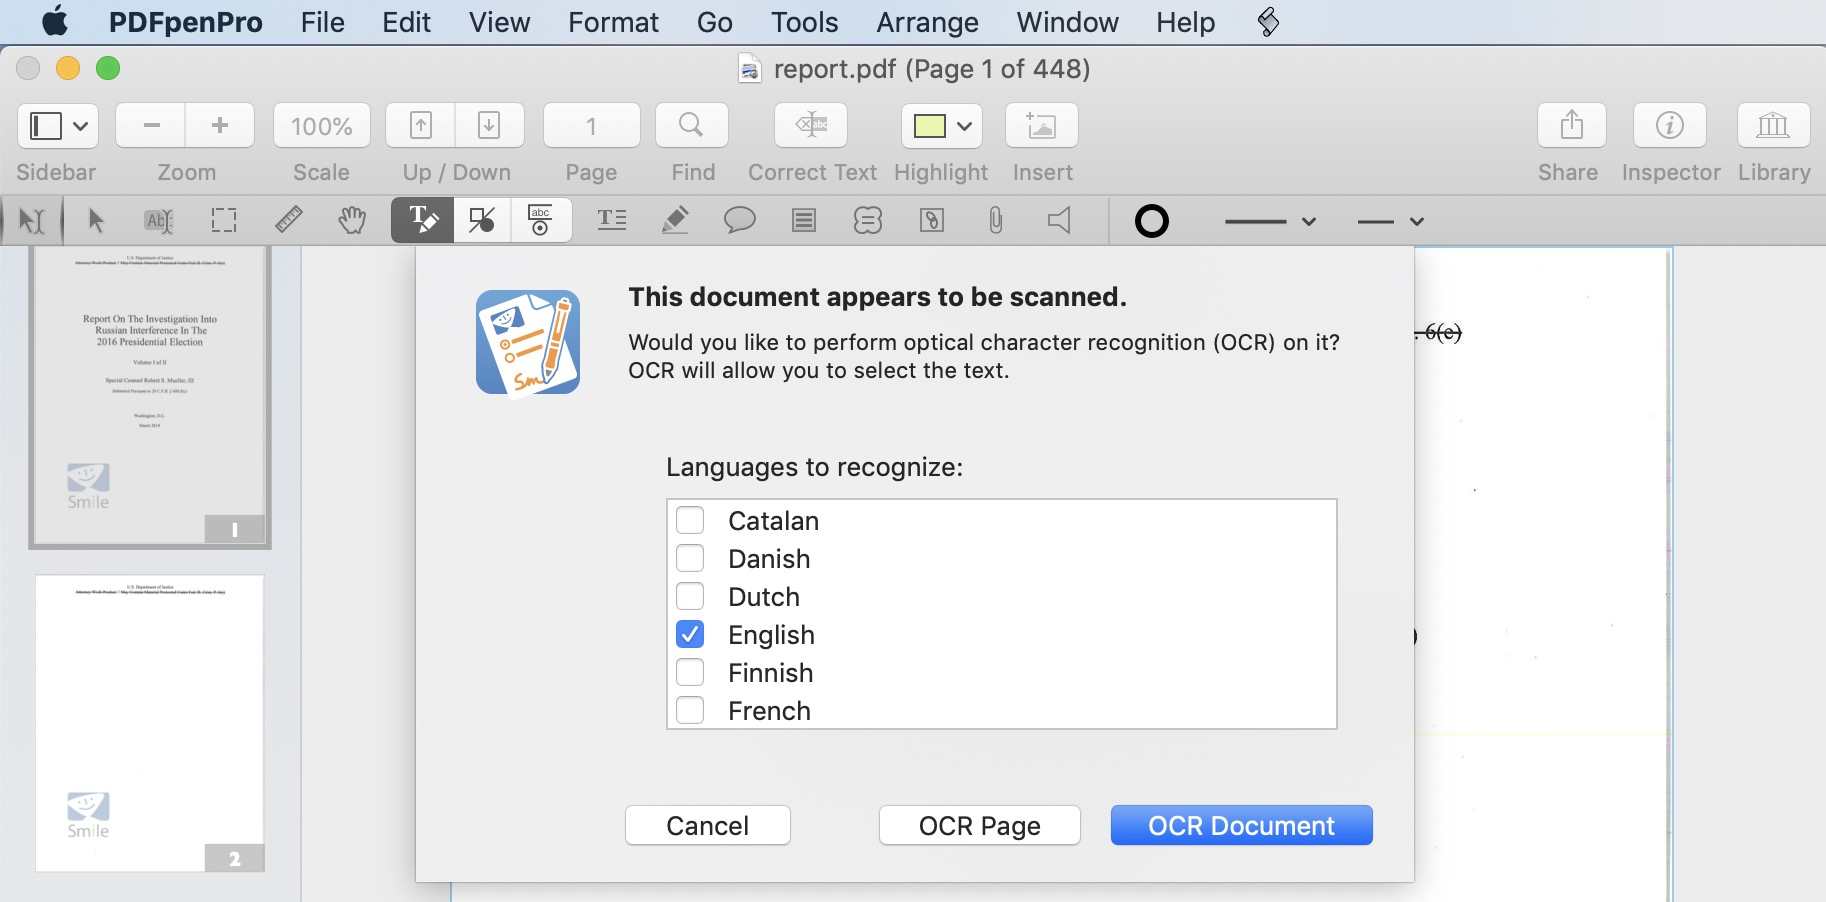 How to apply OCR to scanned PDFs on Mac - 9to5Mac